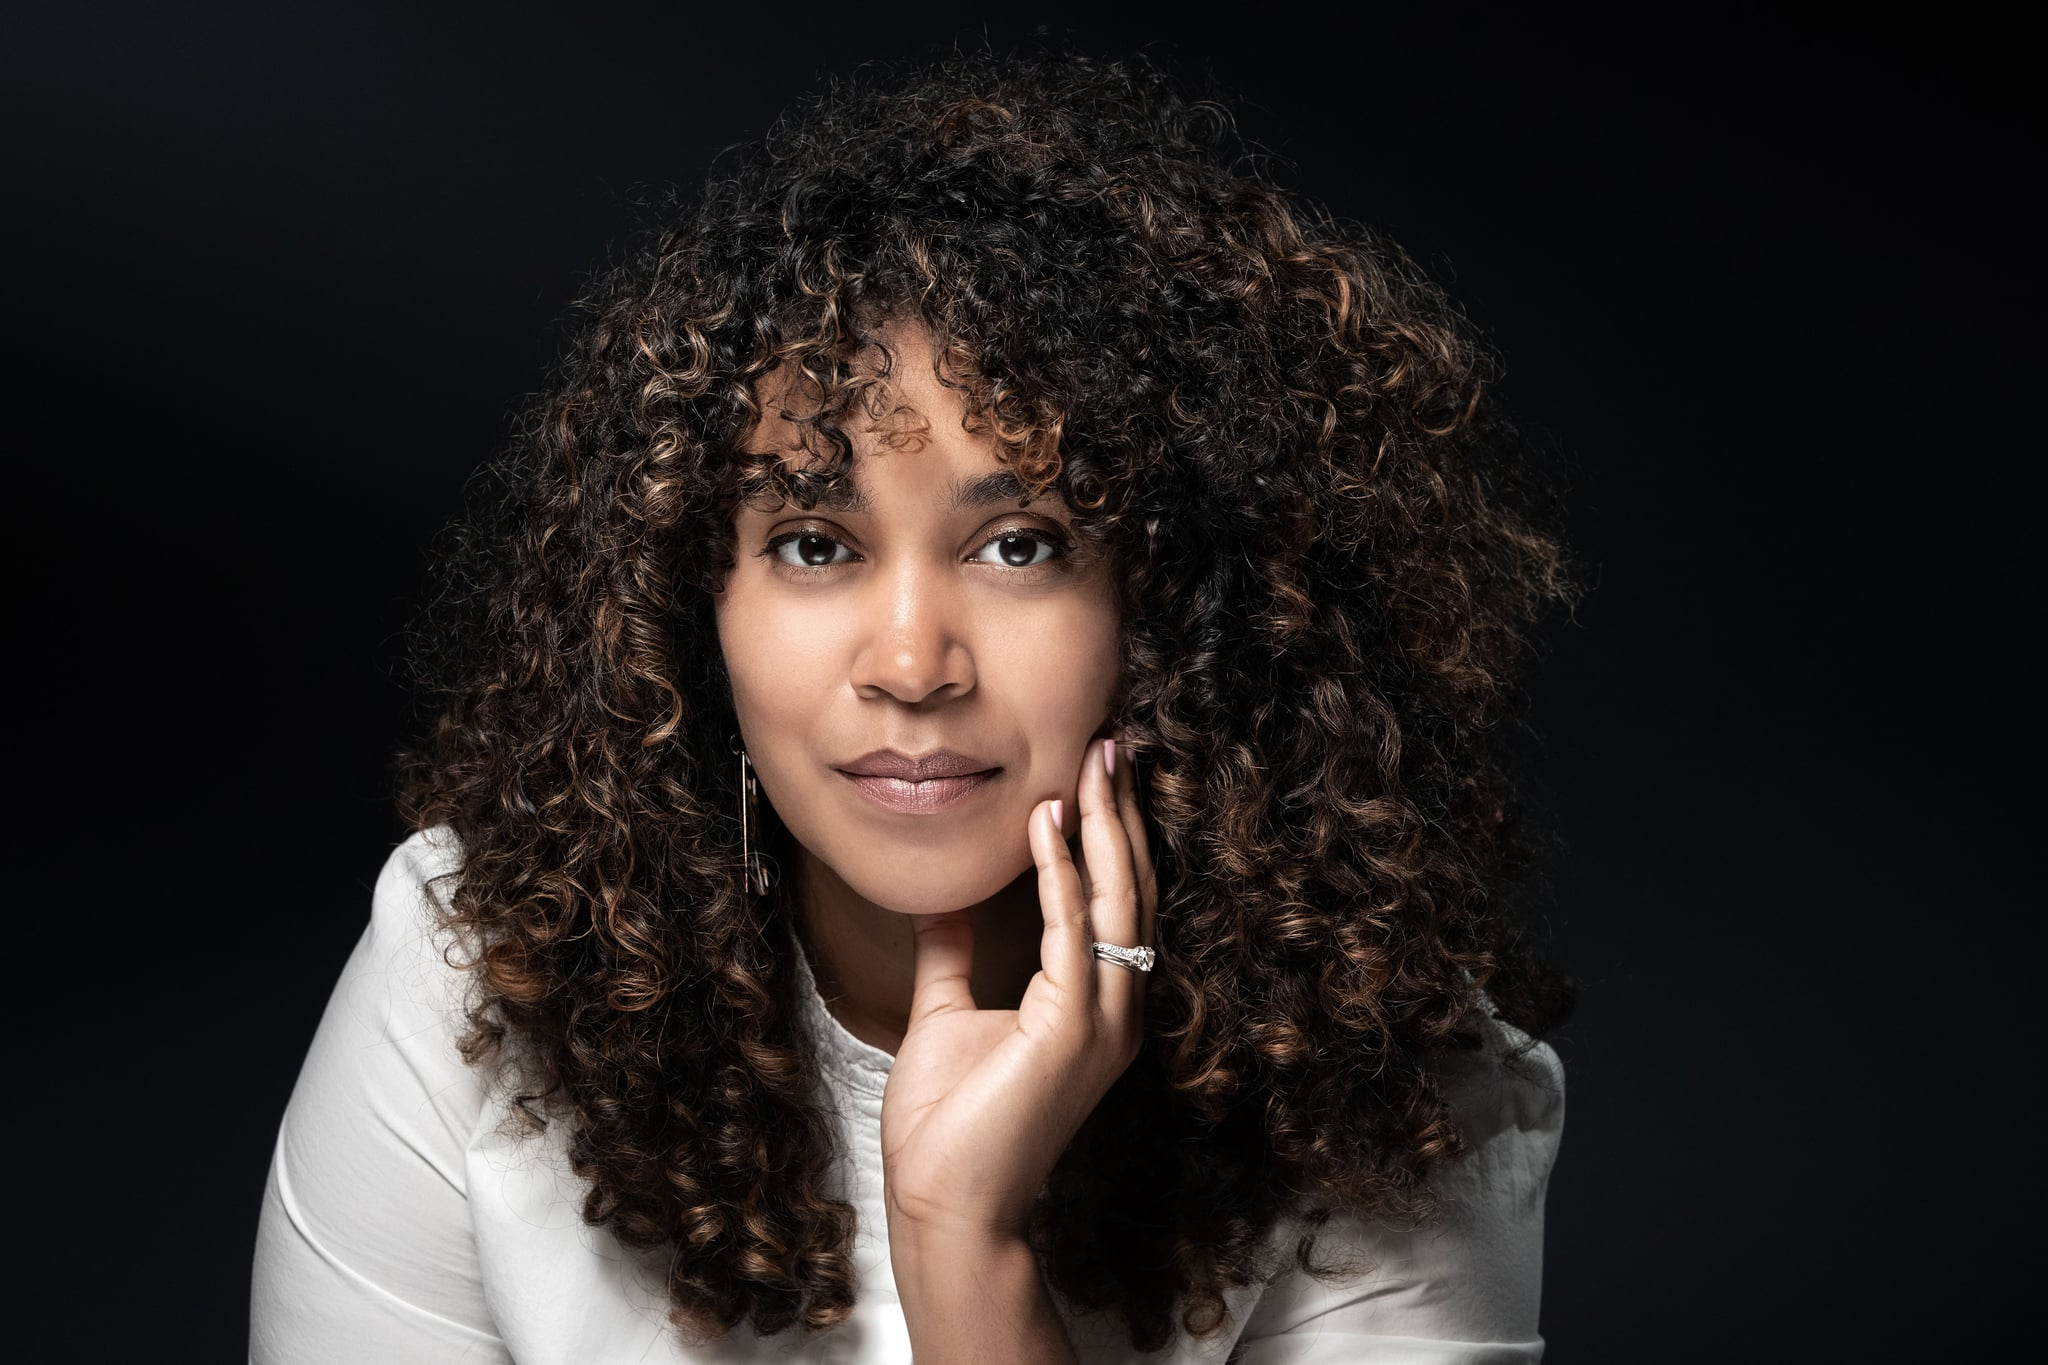 Dominican-American poet, author and writer Elizabeth Acevedo poses during a photo session in Paris on September 17, 2019. (Photo by JOEL SAGET / AFP)        (Photo credit should read JOEL SAGET/AFP/Getty Images)